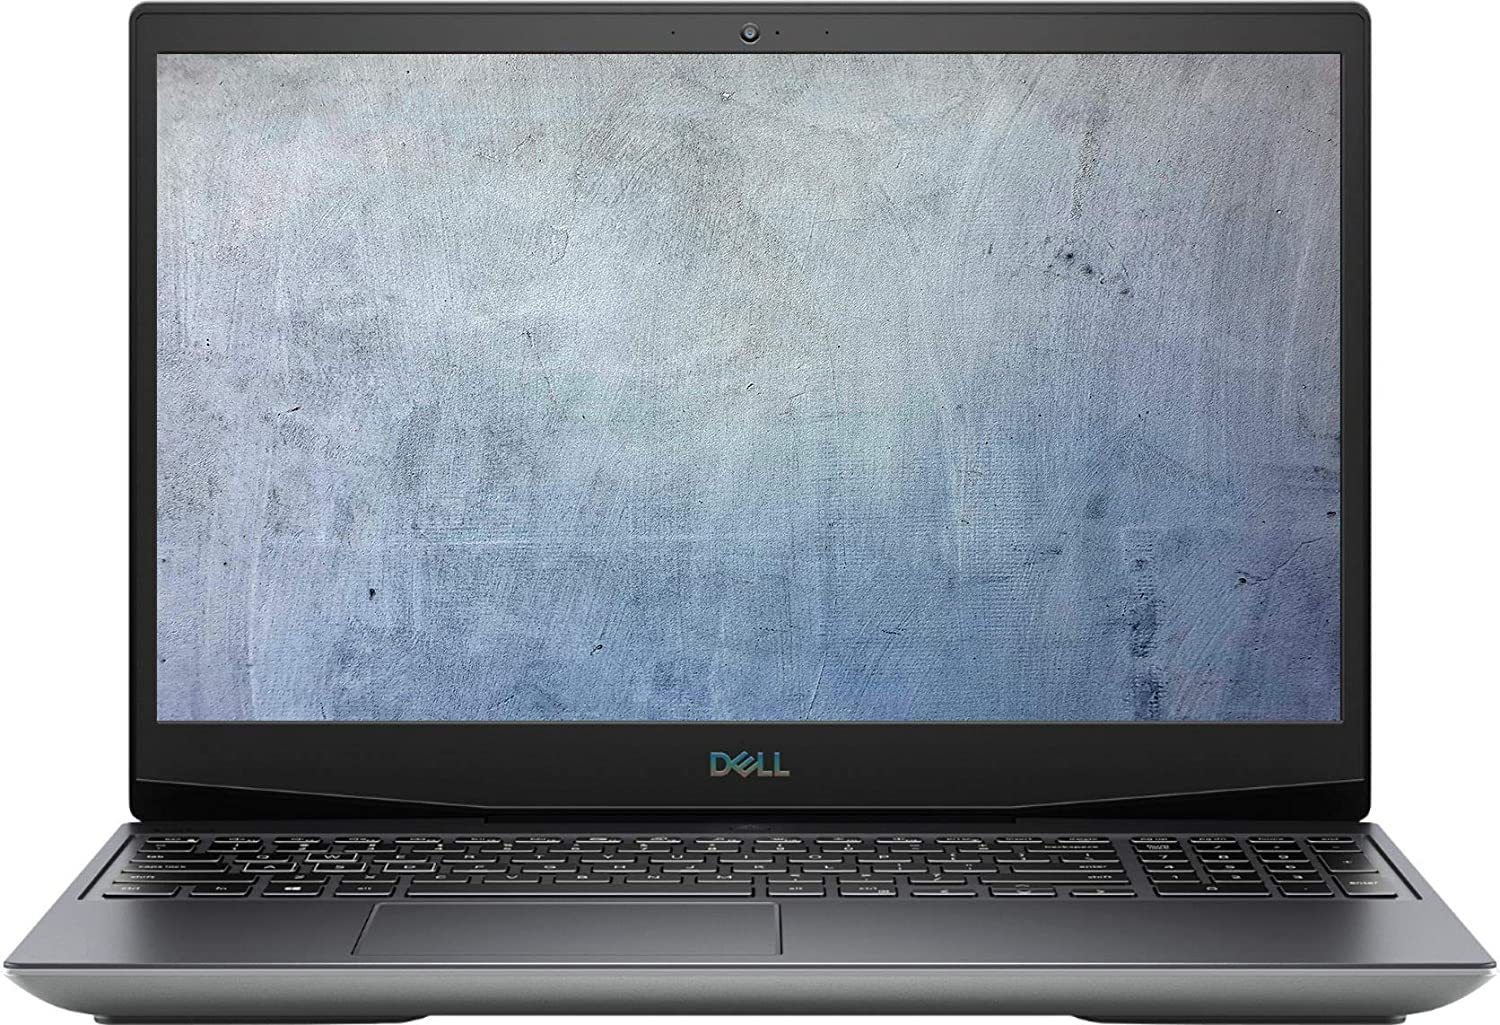 2021 Flagship Dell G5 15 VR Ready Gaming Laptop Computer 15.6